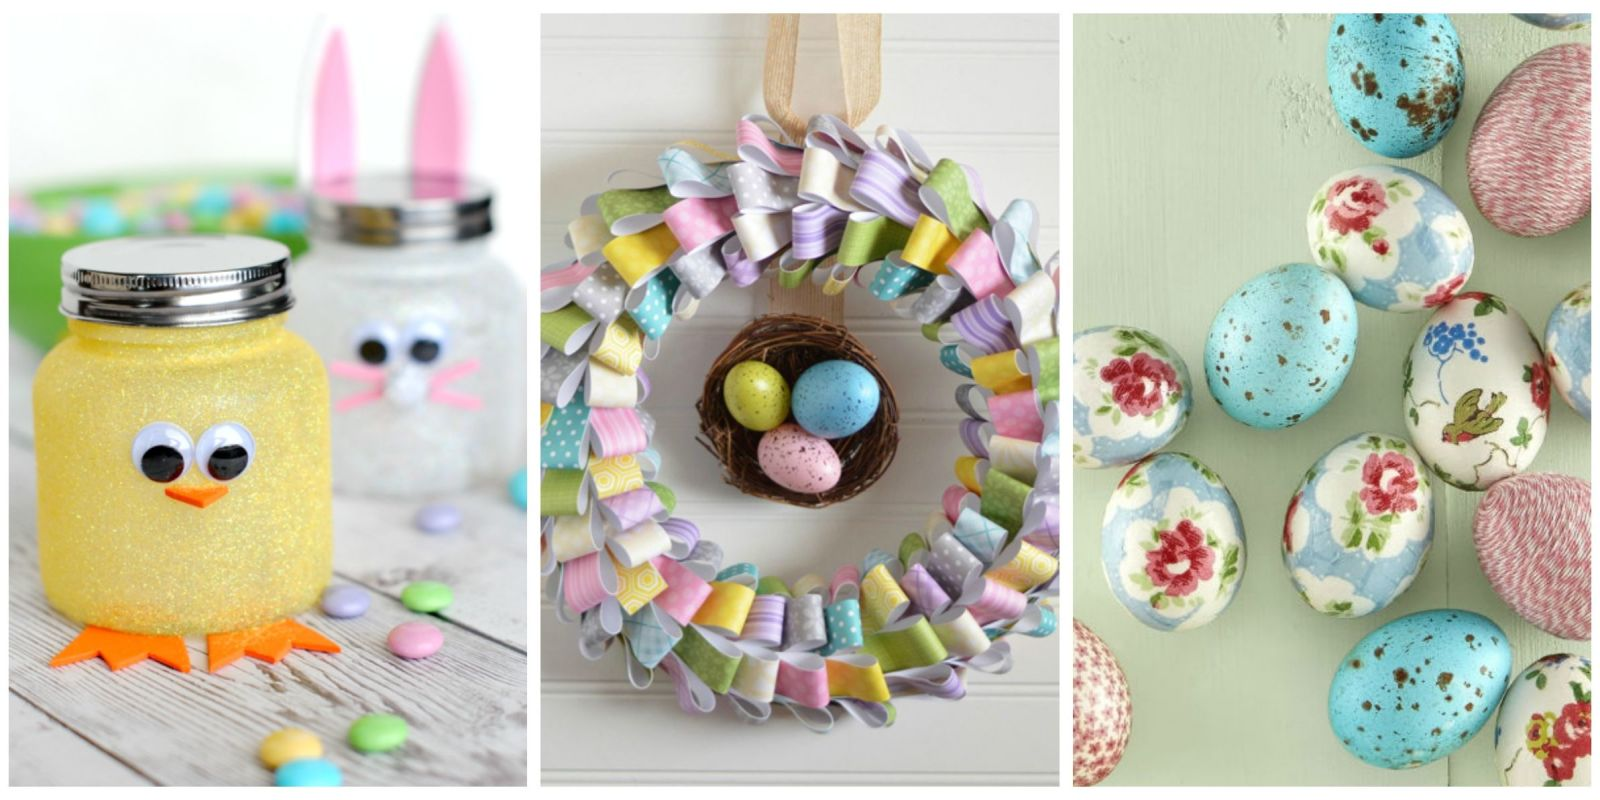 60 easy easter crafts ideas for easter diy decorations for Diy handicraft items